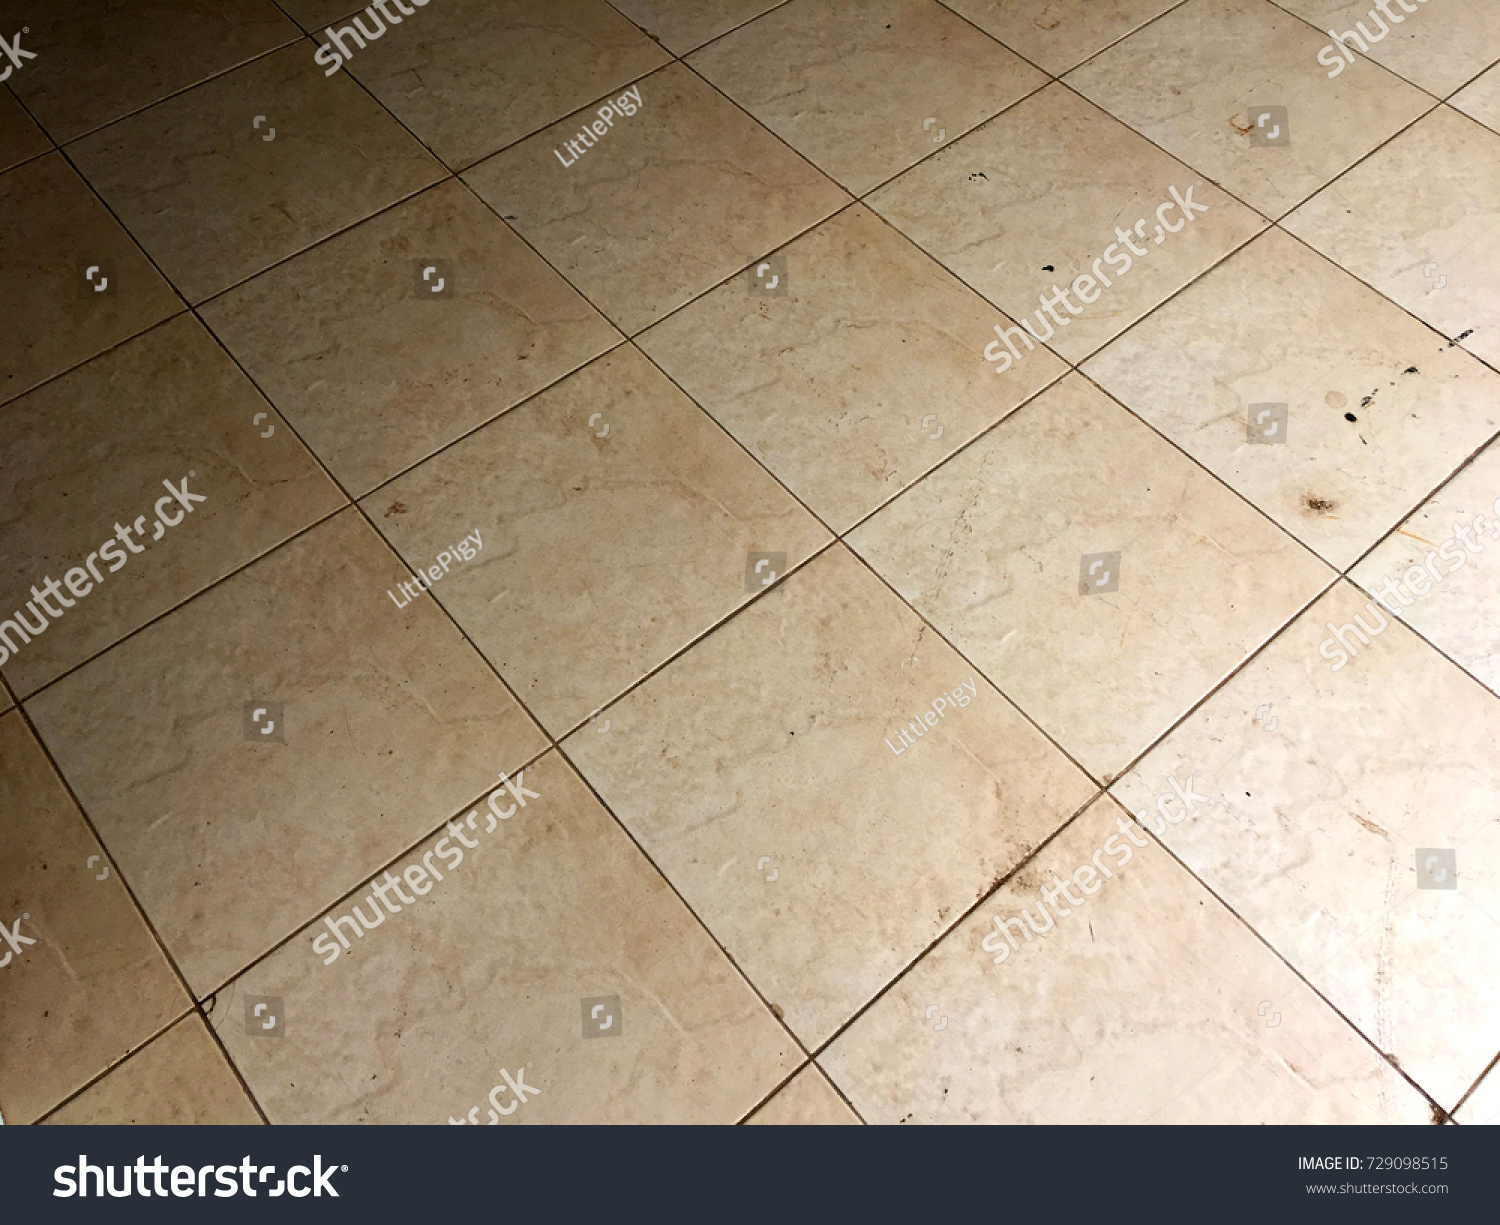 Old Ceramic Tiles Texture And Backgrounddirty And Stain Ez Canvas